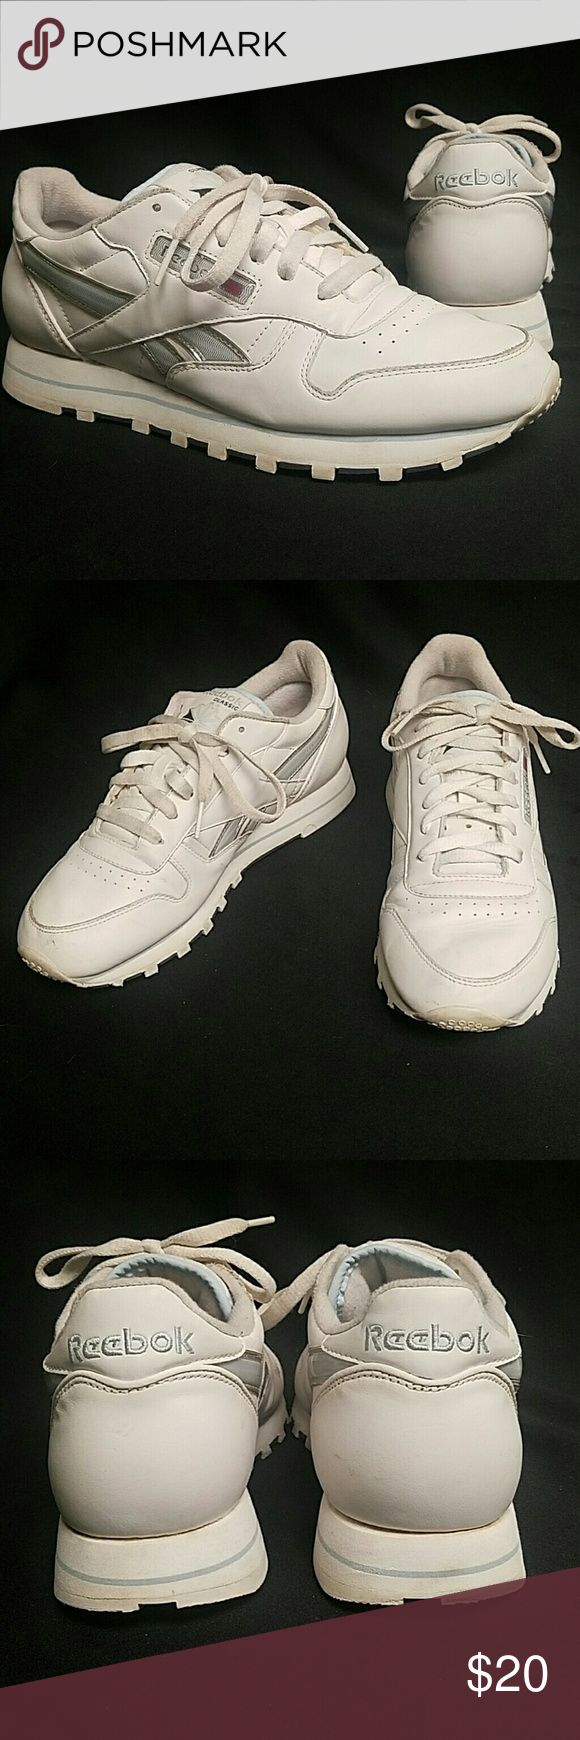 Reebok Classic Women Size 8.5 Great Condition Up for sale is a pair of Original Reebok Classics  Size 8.5 Women Great Condition with less than normal wear. Very Classic Stylish shoe. Ships Same day. Guaranteed. Reebok Shoes